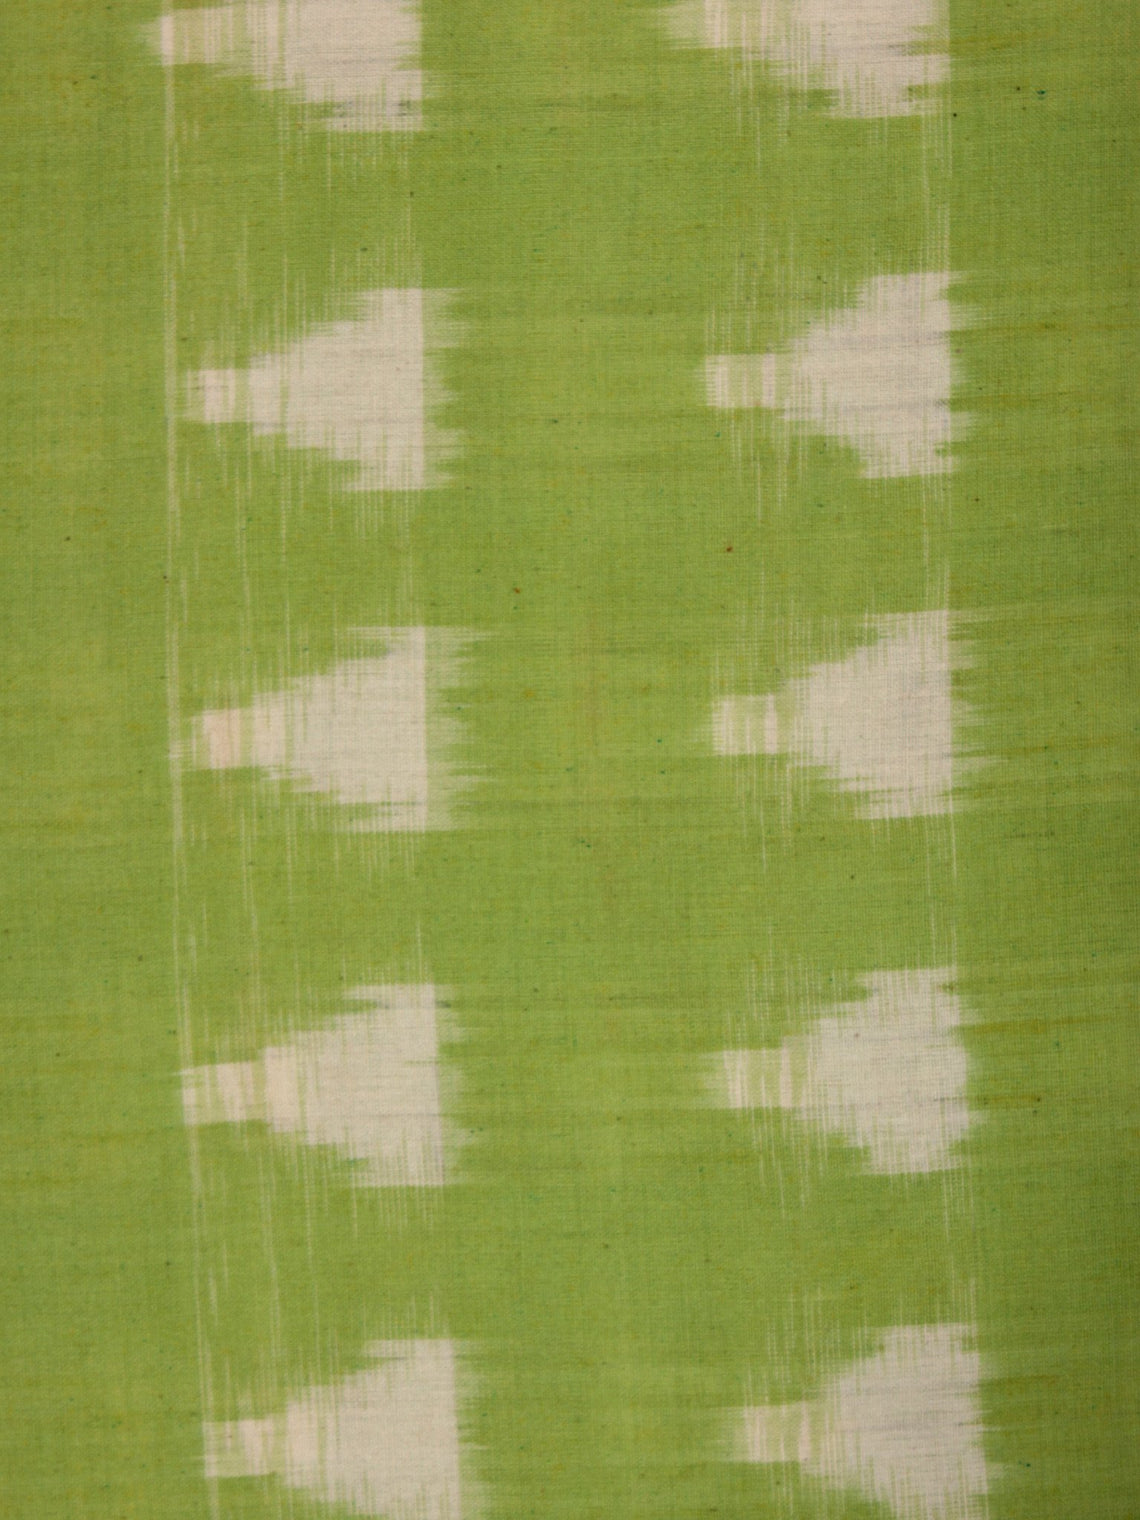 Chartreuse Green Ivory Pochampally Hand Weaved Double Ikat Traingular Fabric Per Meter - F002F826